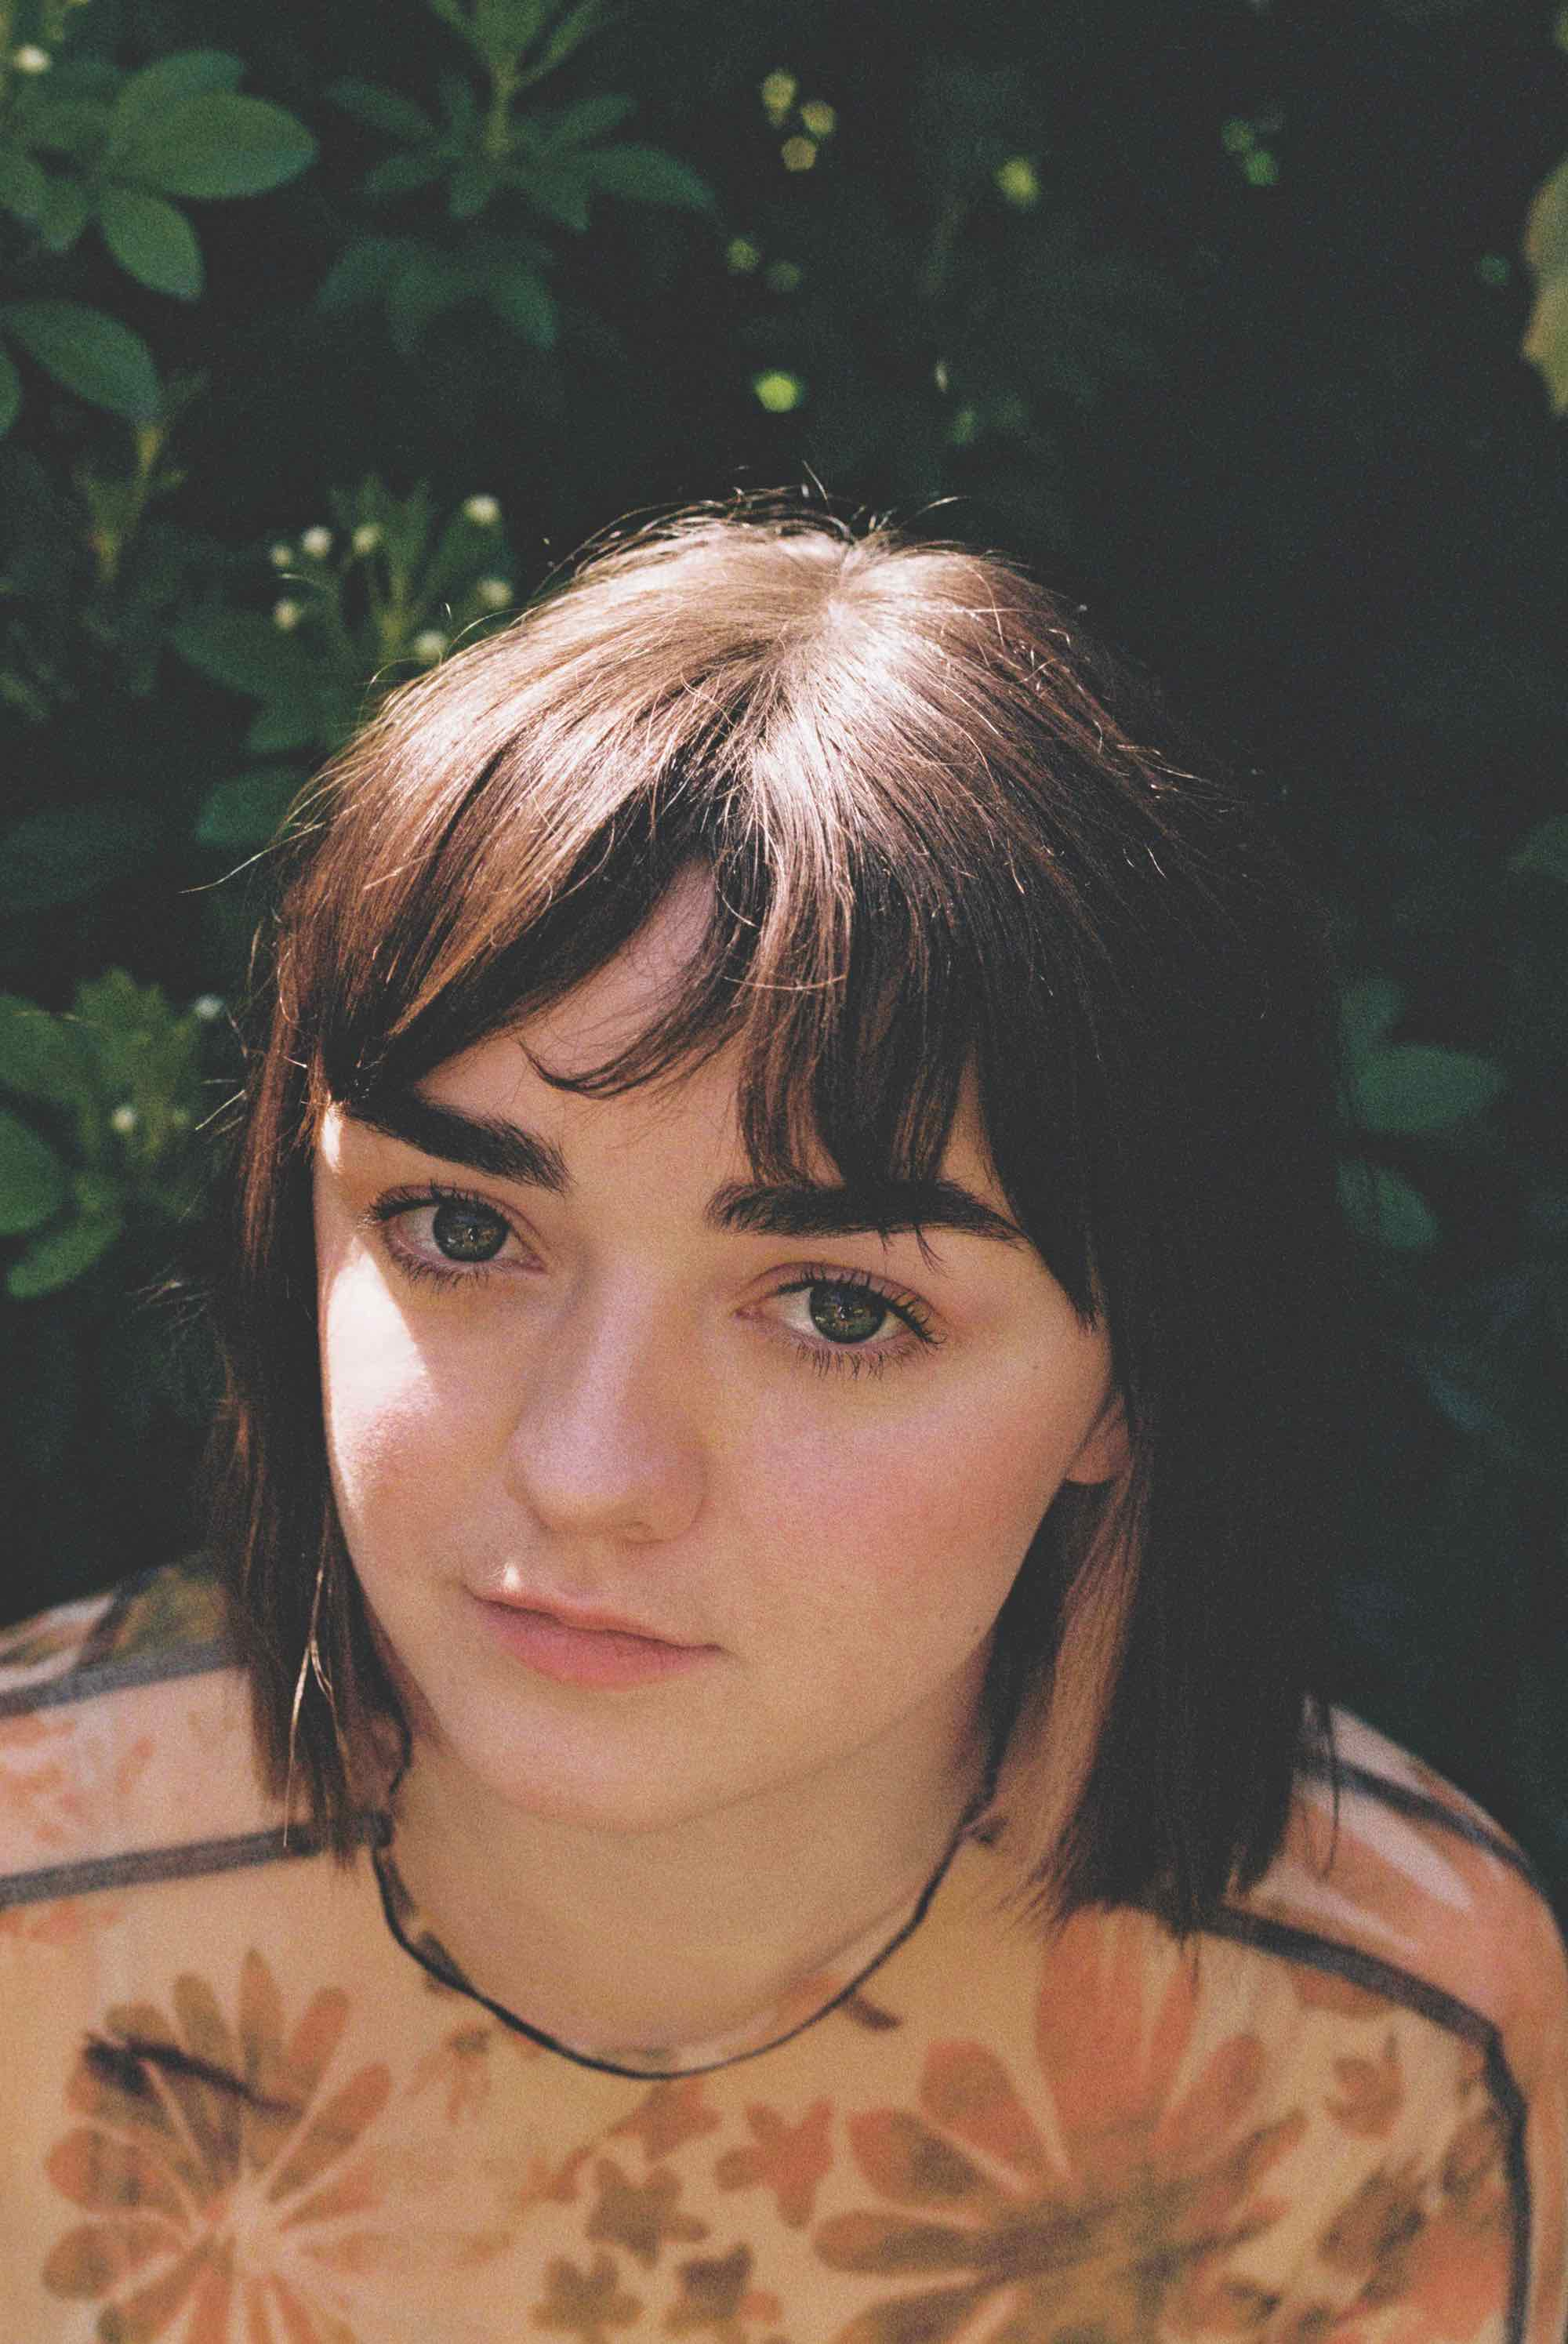 Maisie williams close up